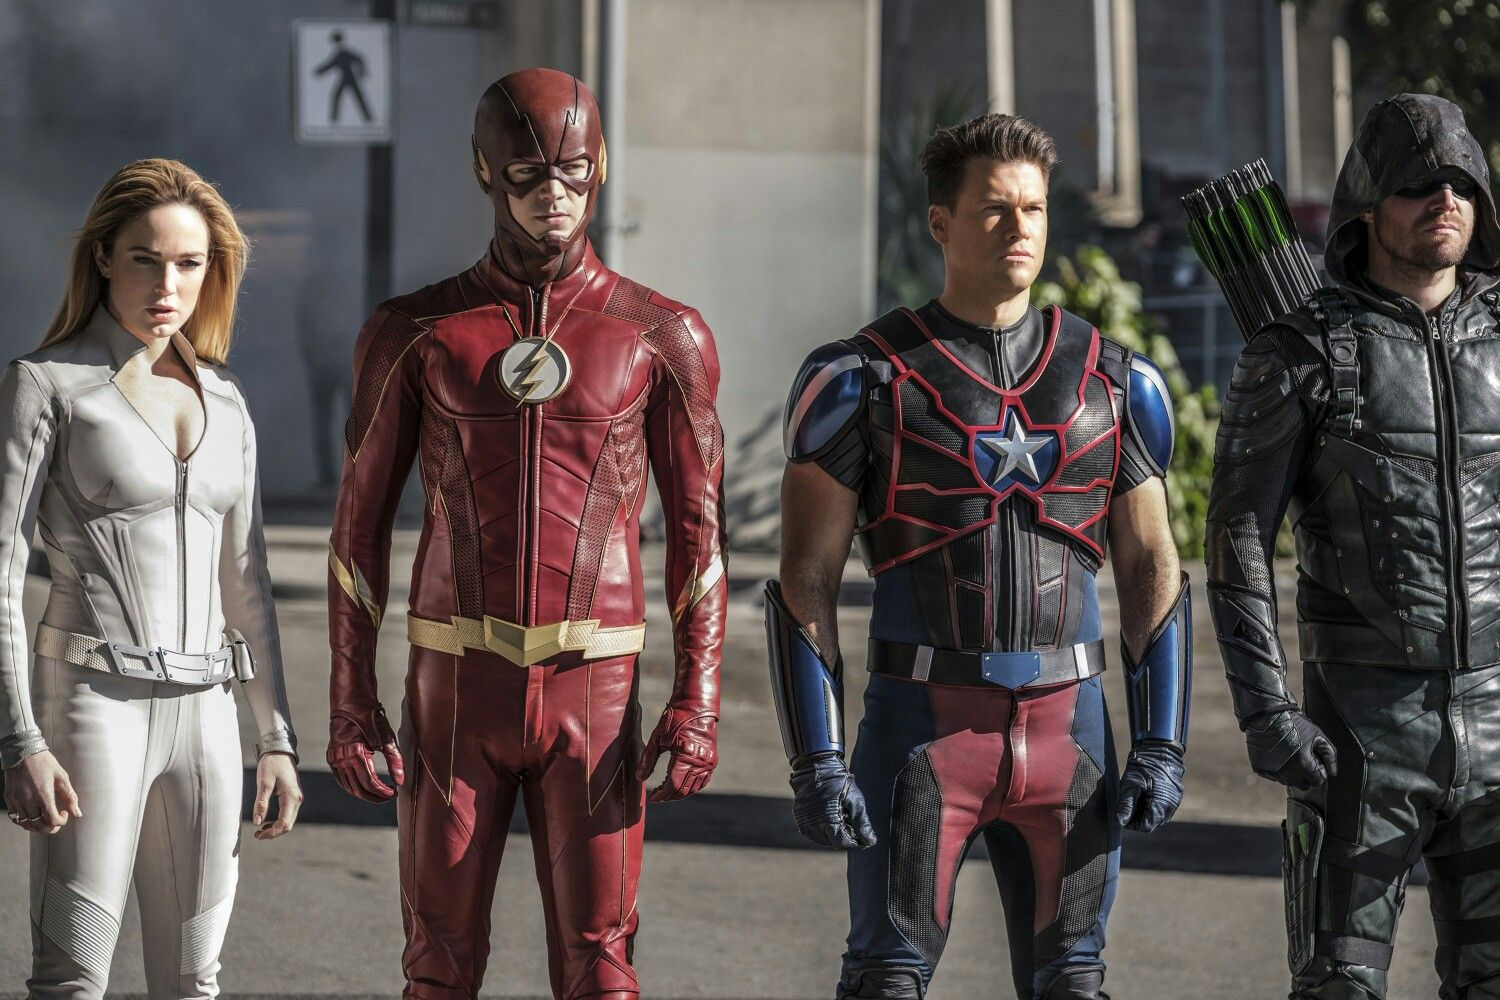 Supergirl The Flash Arrow Legends Of Tomorrow Crossover